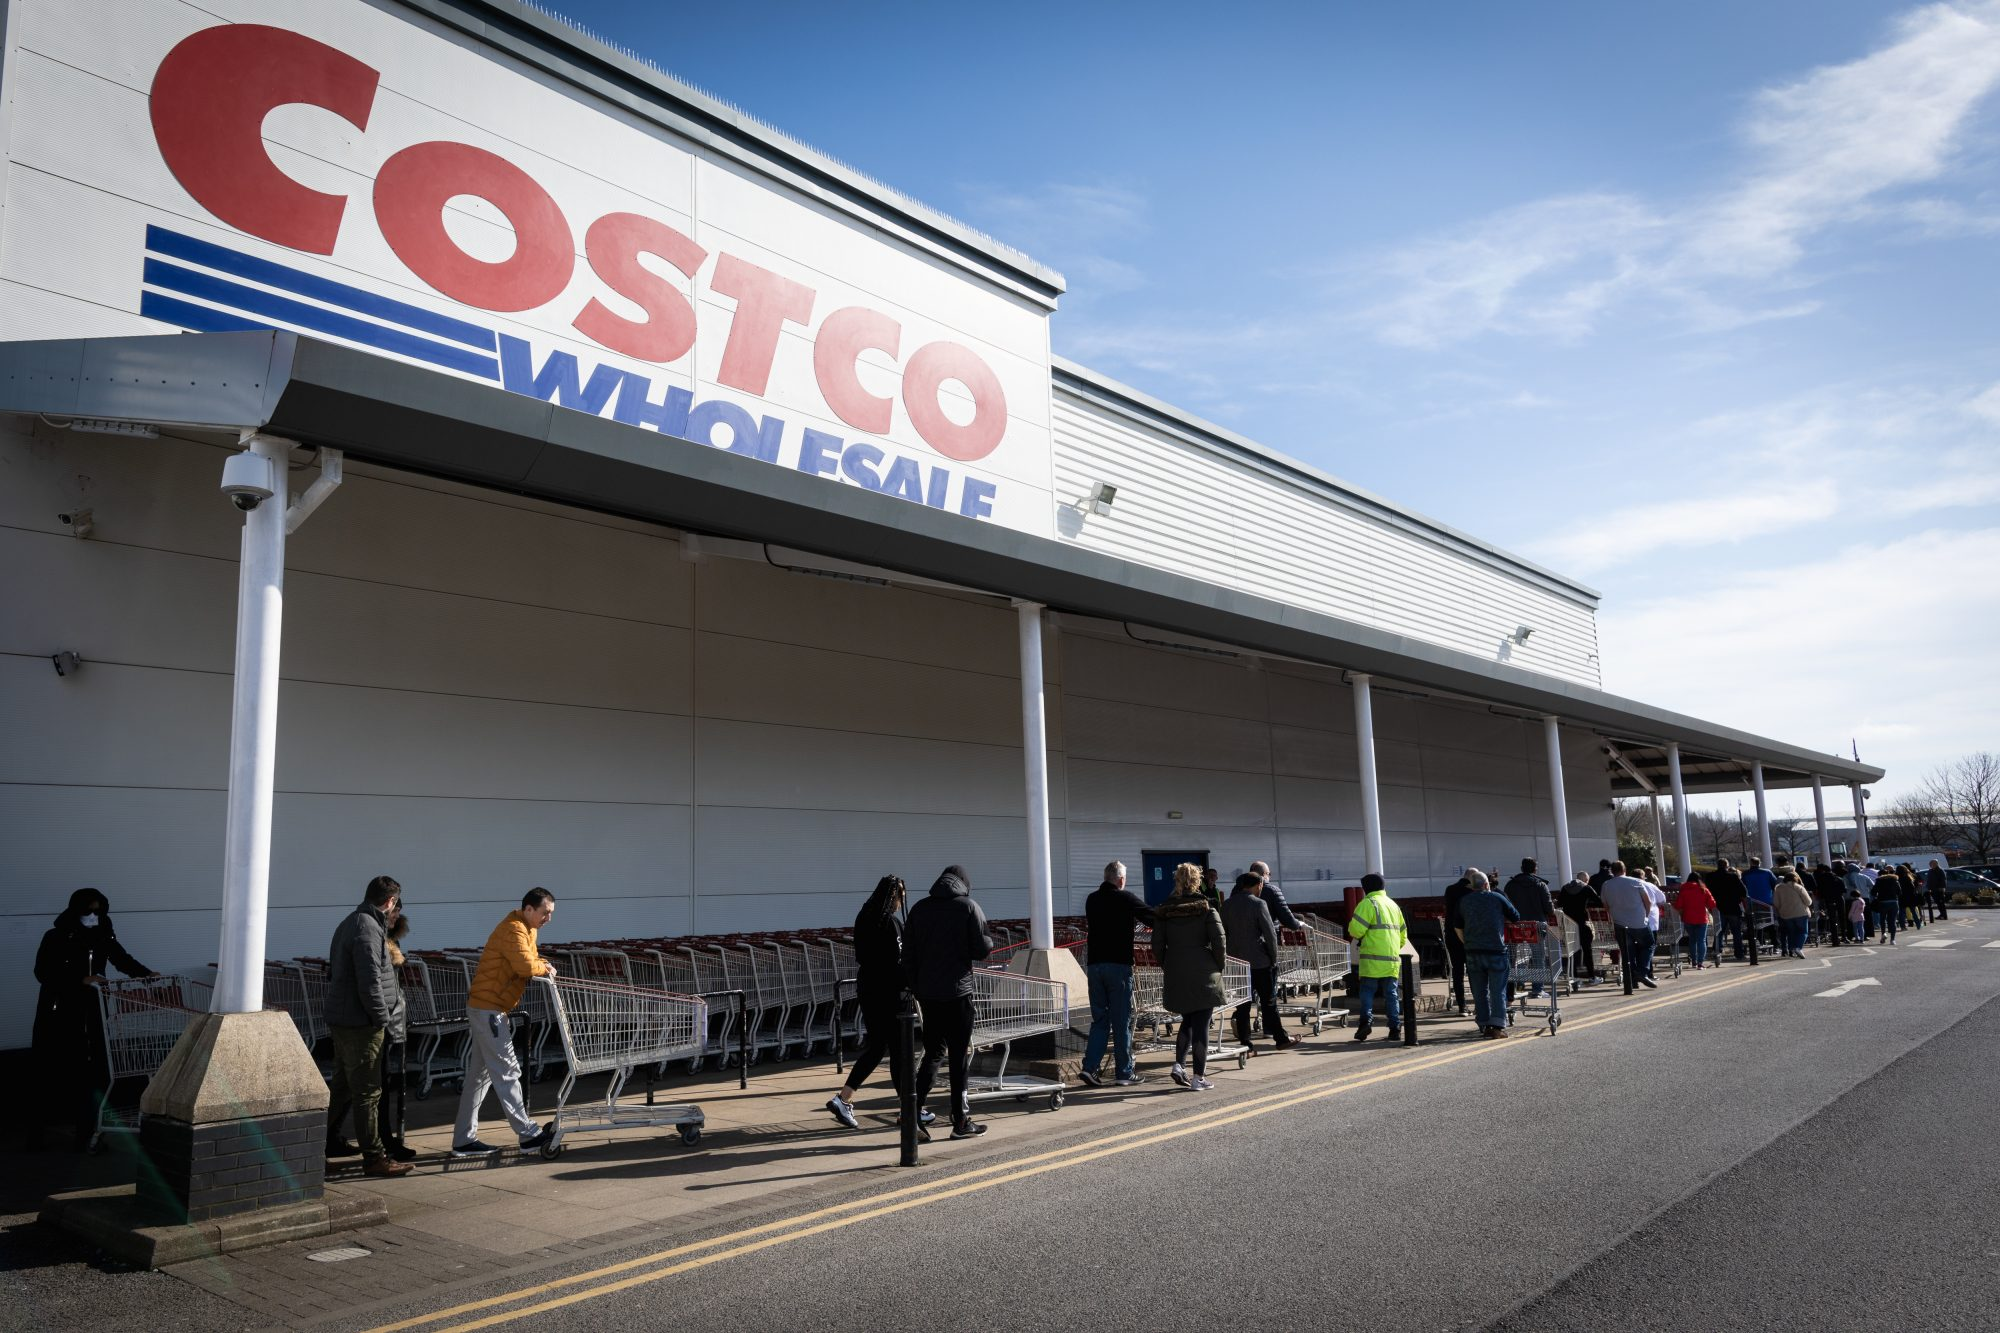 People queuing at Costco during the corona pandemic.Despite